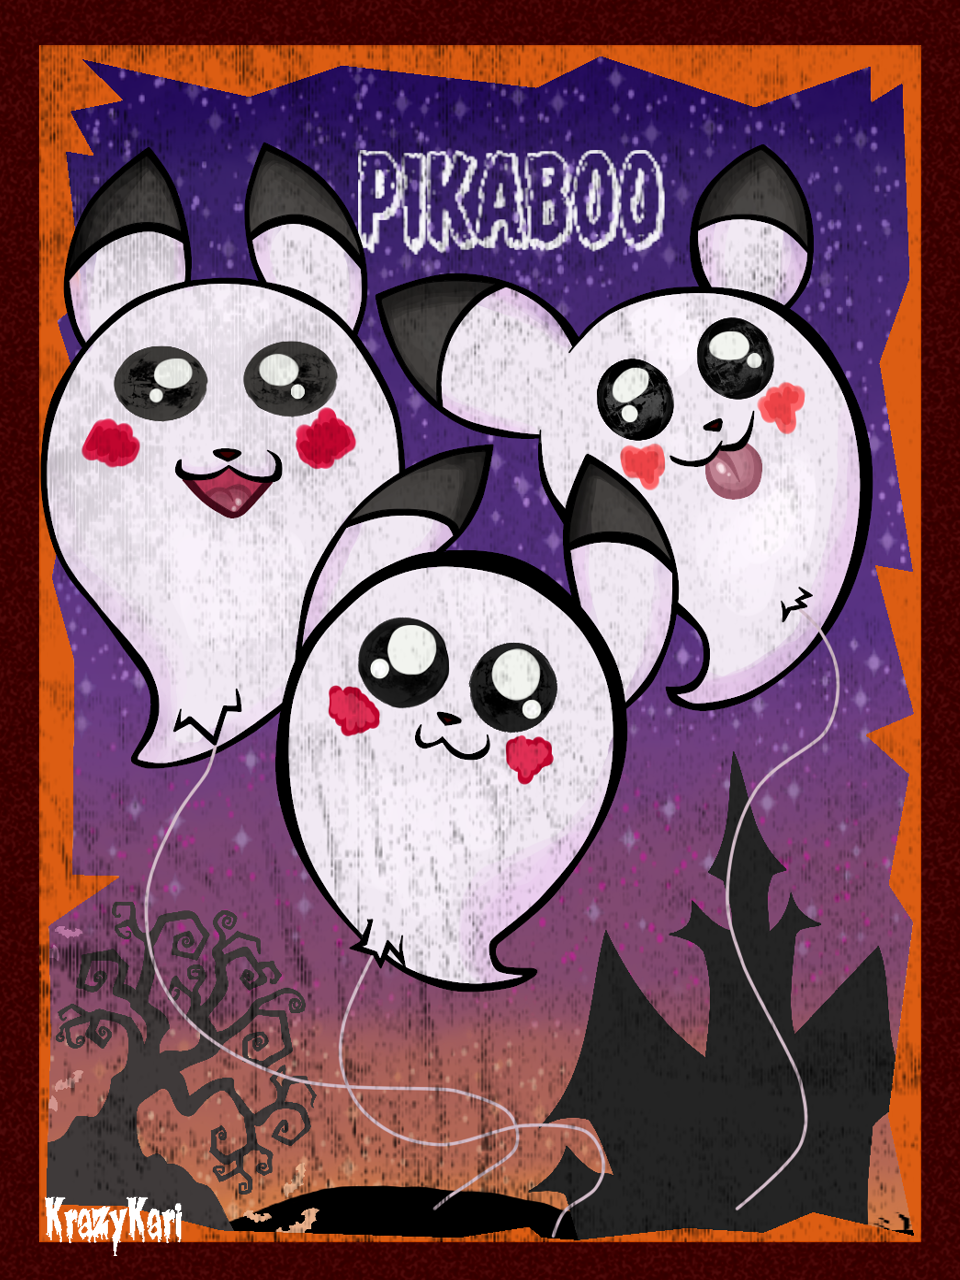 (Pokemon) Pikaboo